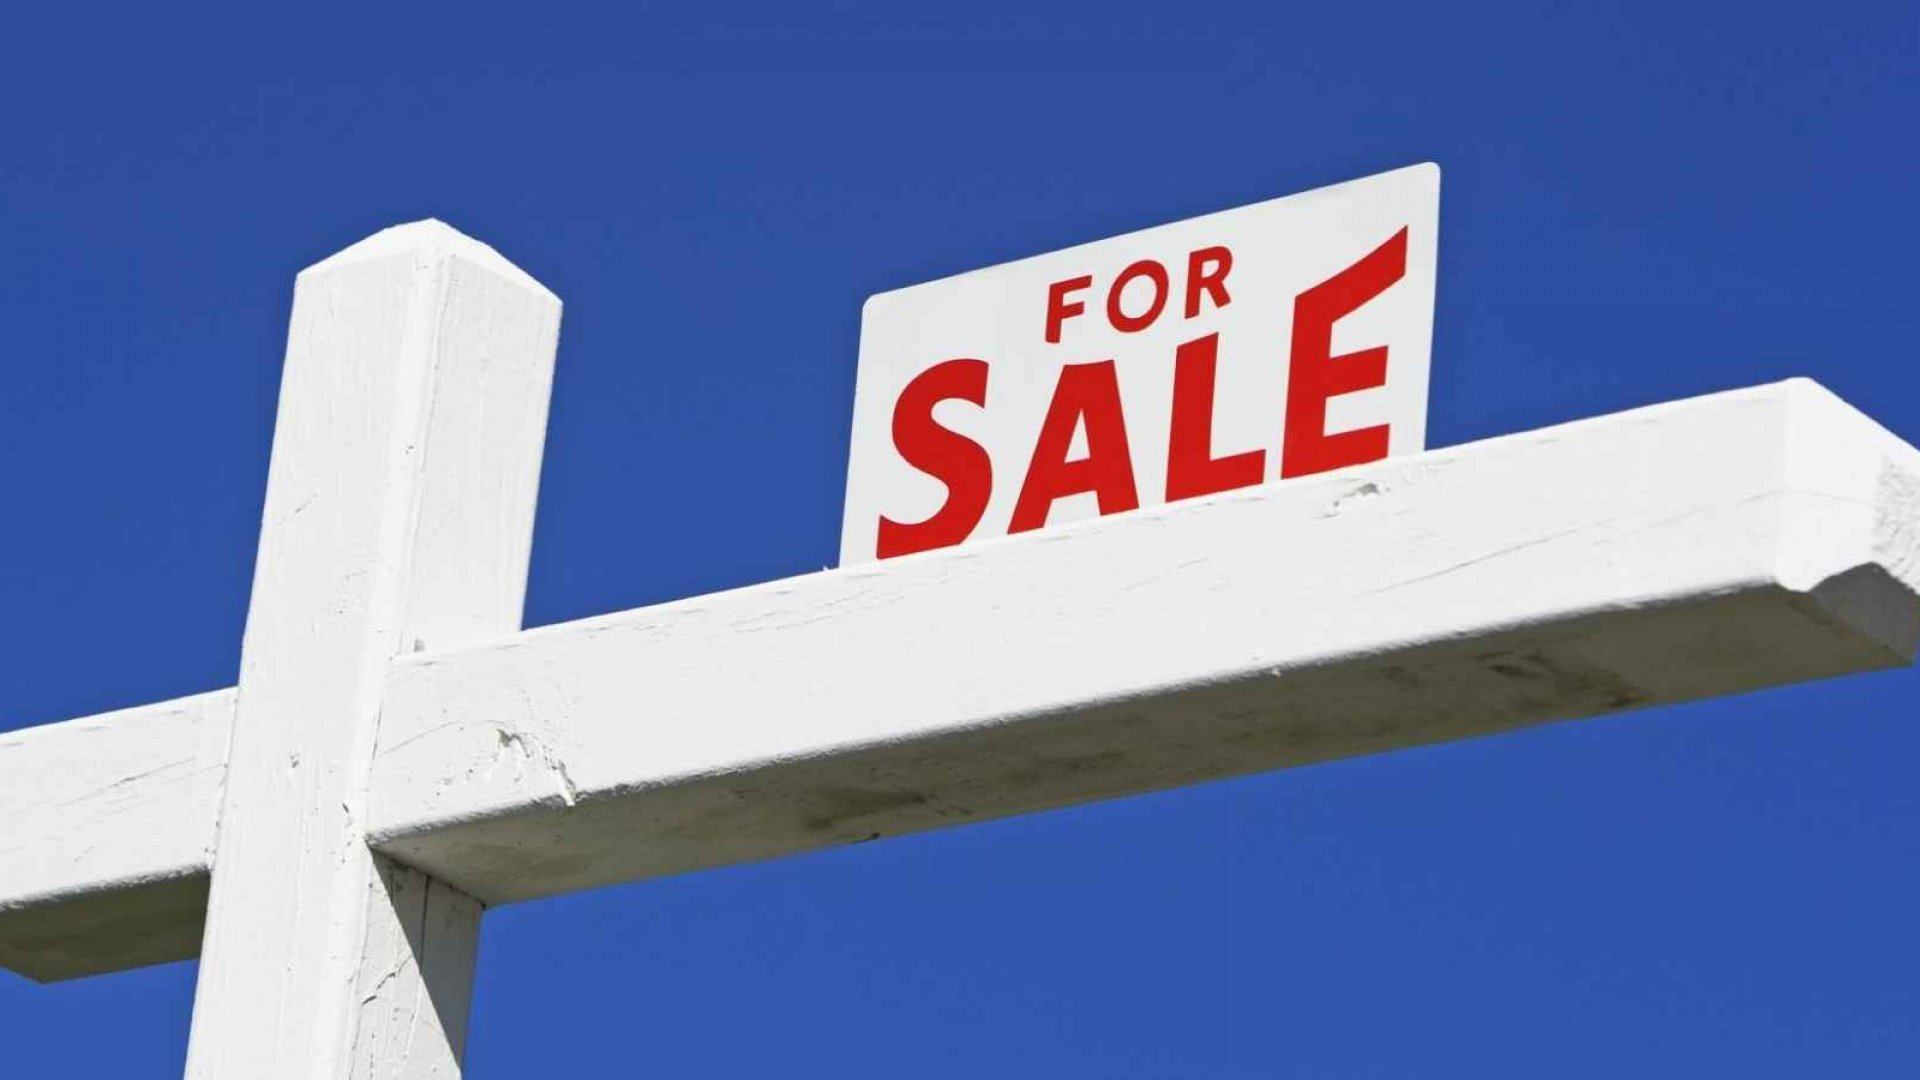 Why You Should Lead Like You're Up for Sale